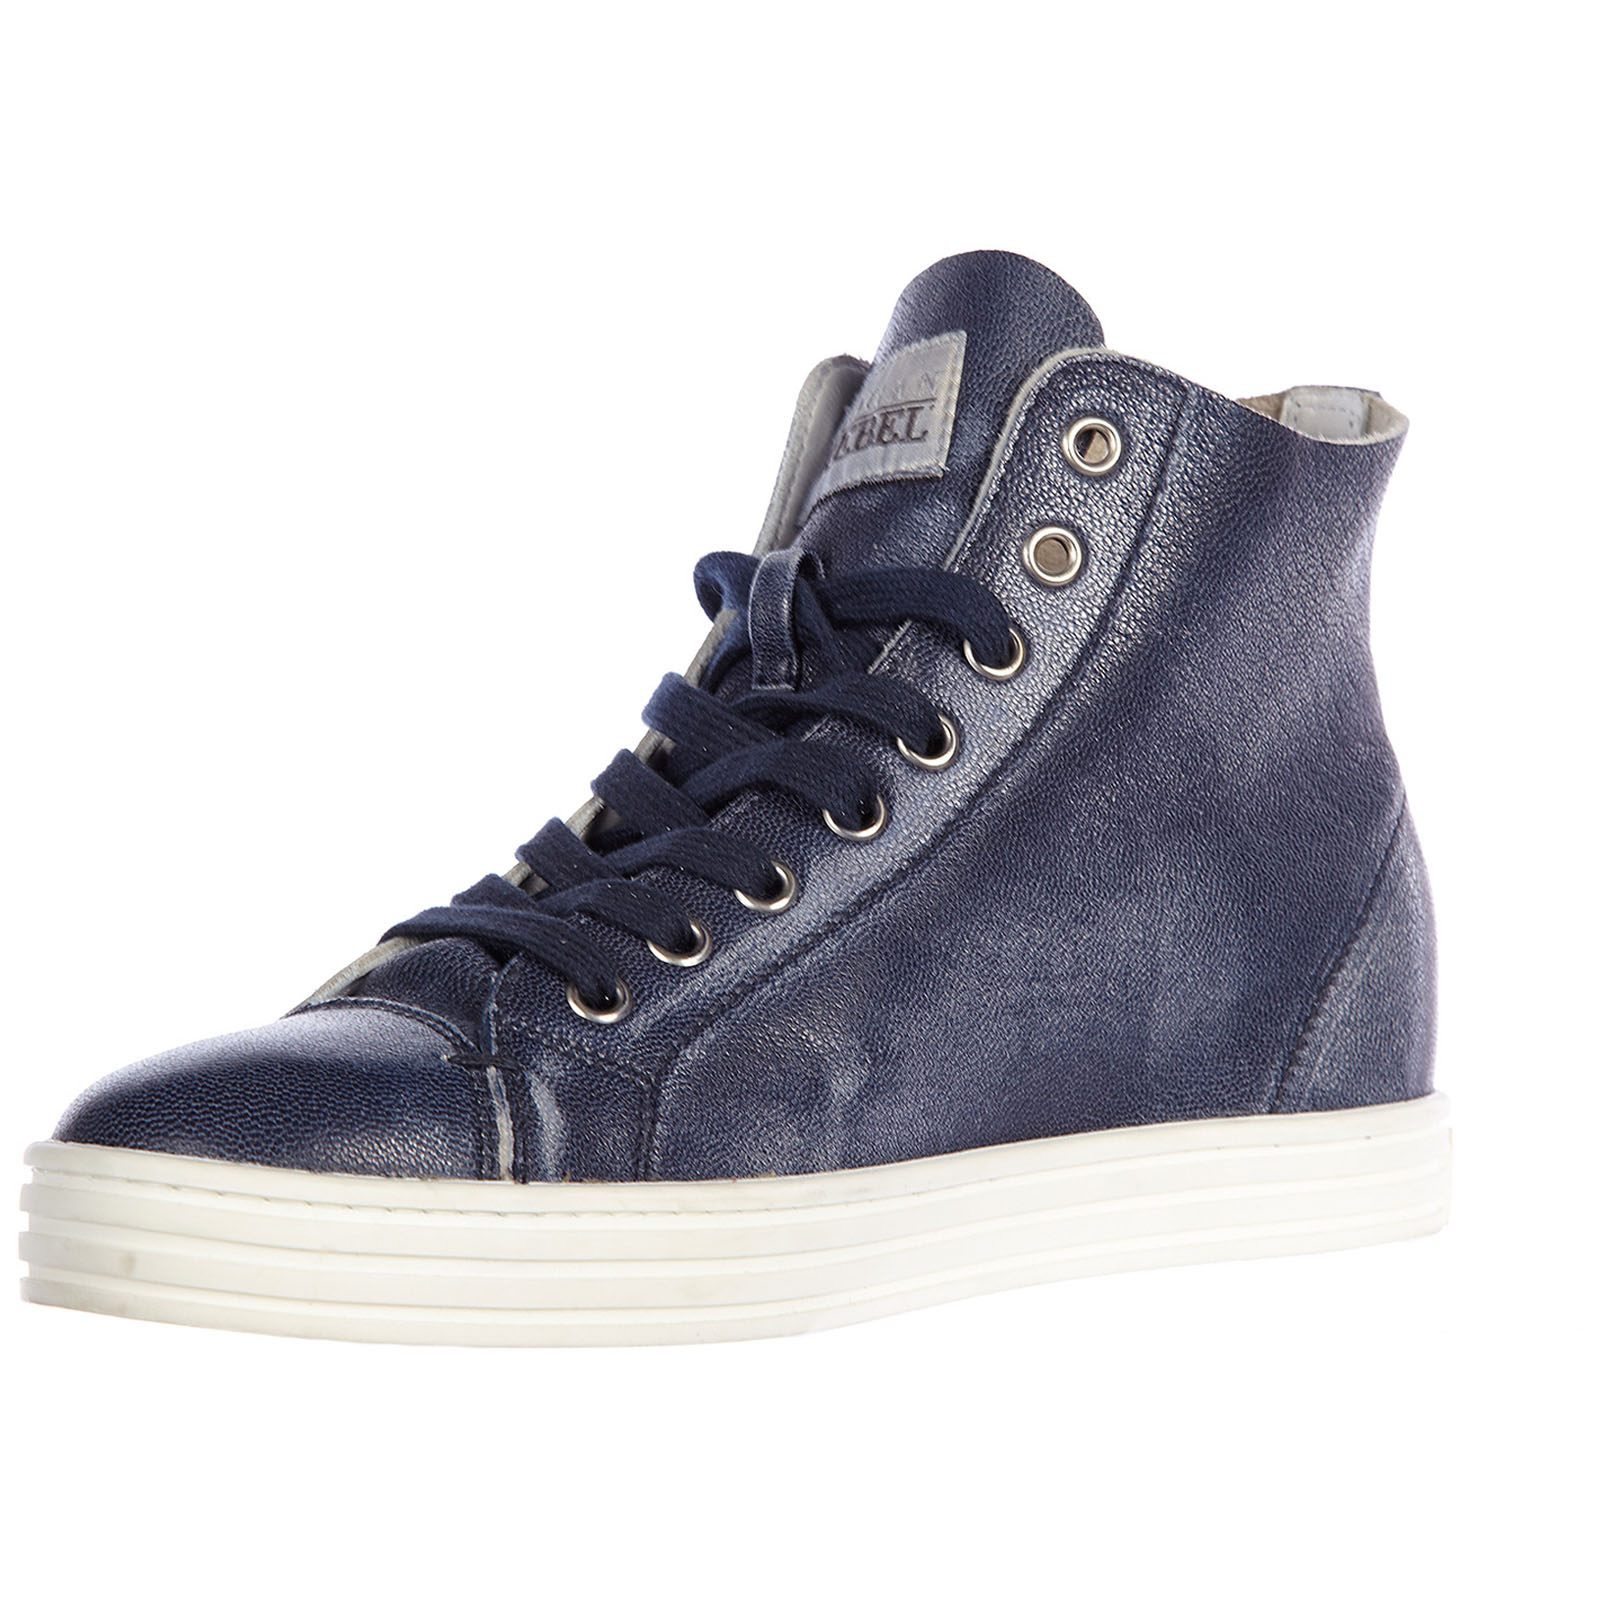 ... Women s shoes high top leather trainers sneakers r182 rebel vintage ... 7b9a0316fe4